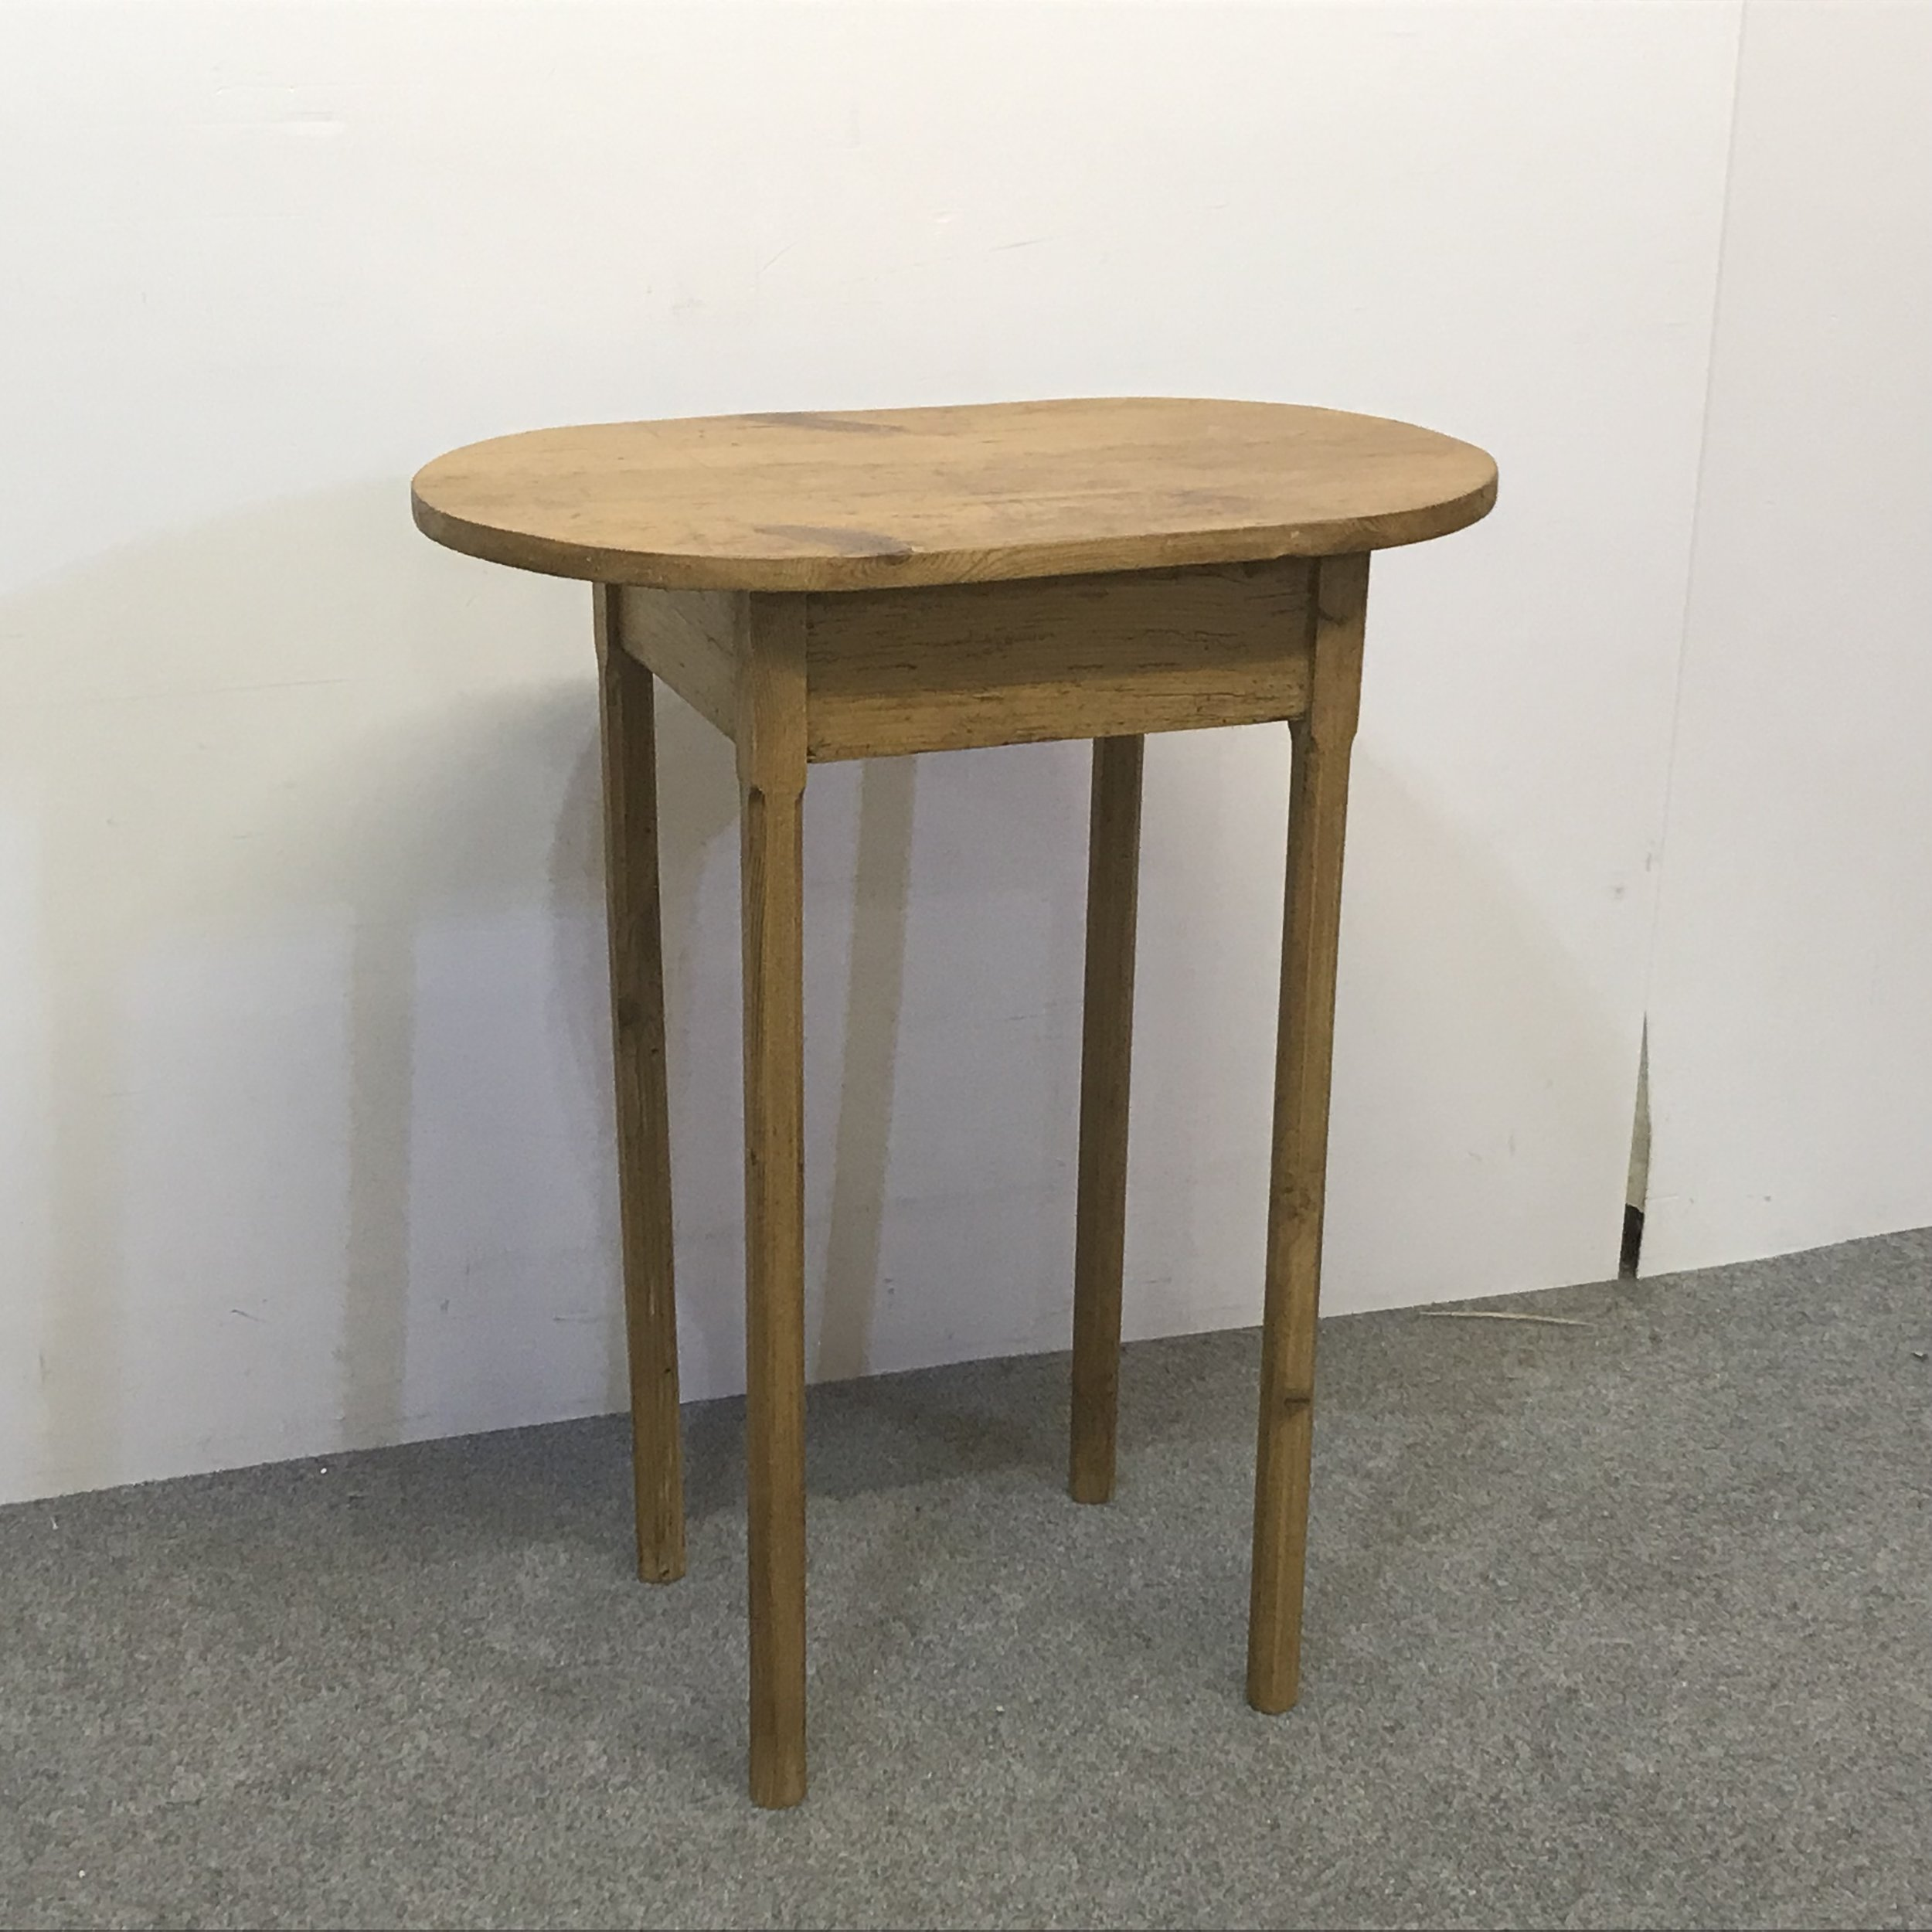 Small oval pine table